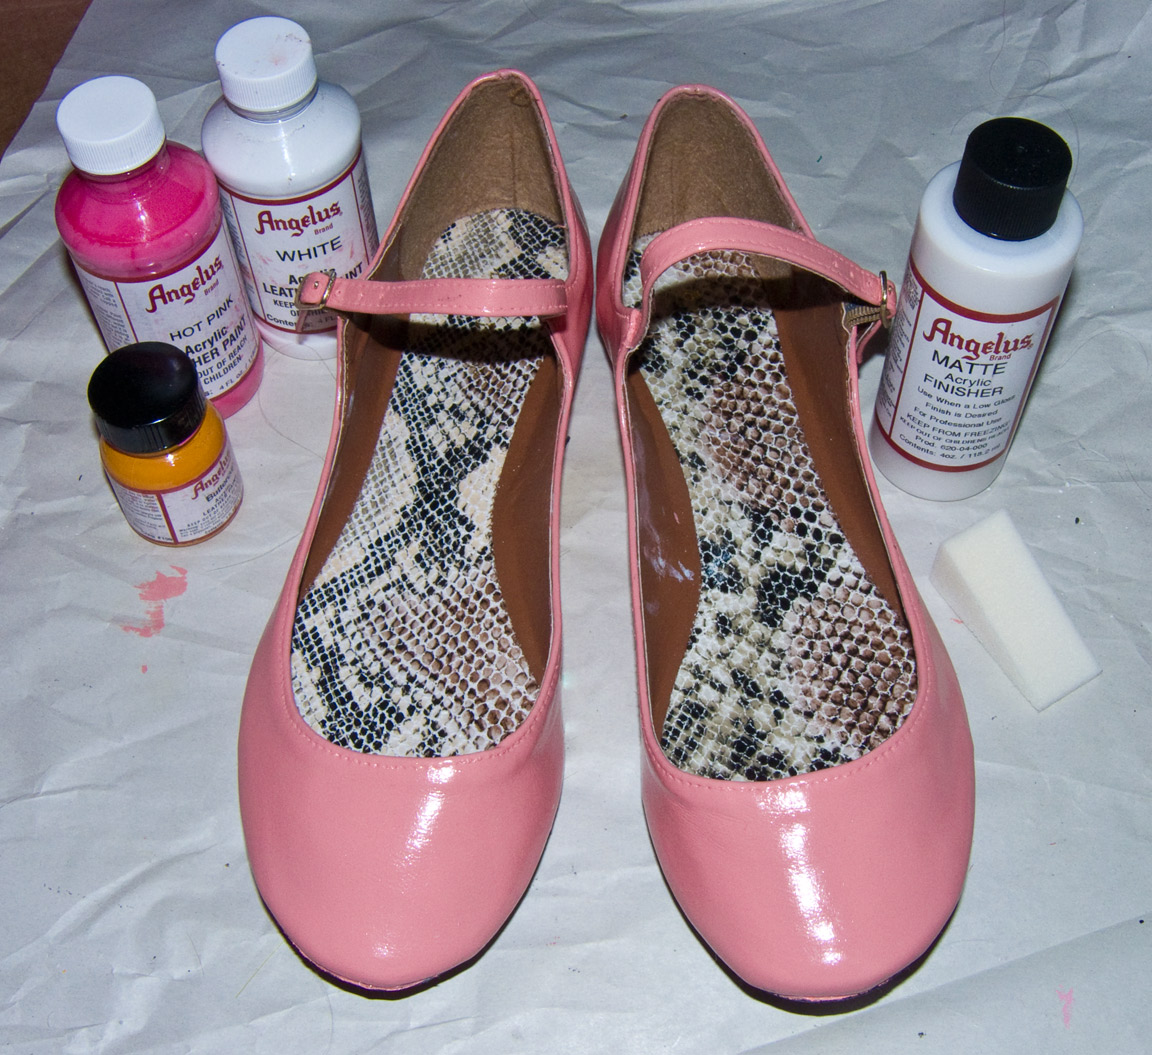 Can I Paint Leather Shoes With Acrylic Paint